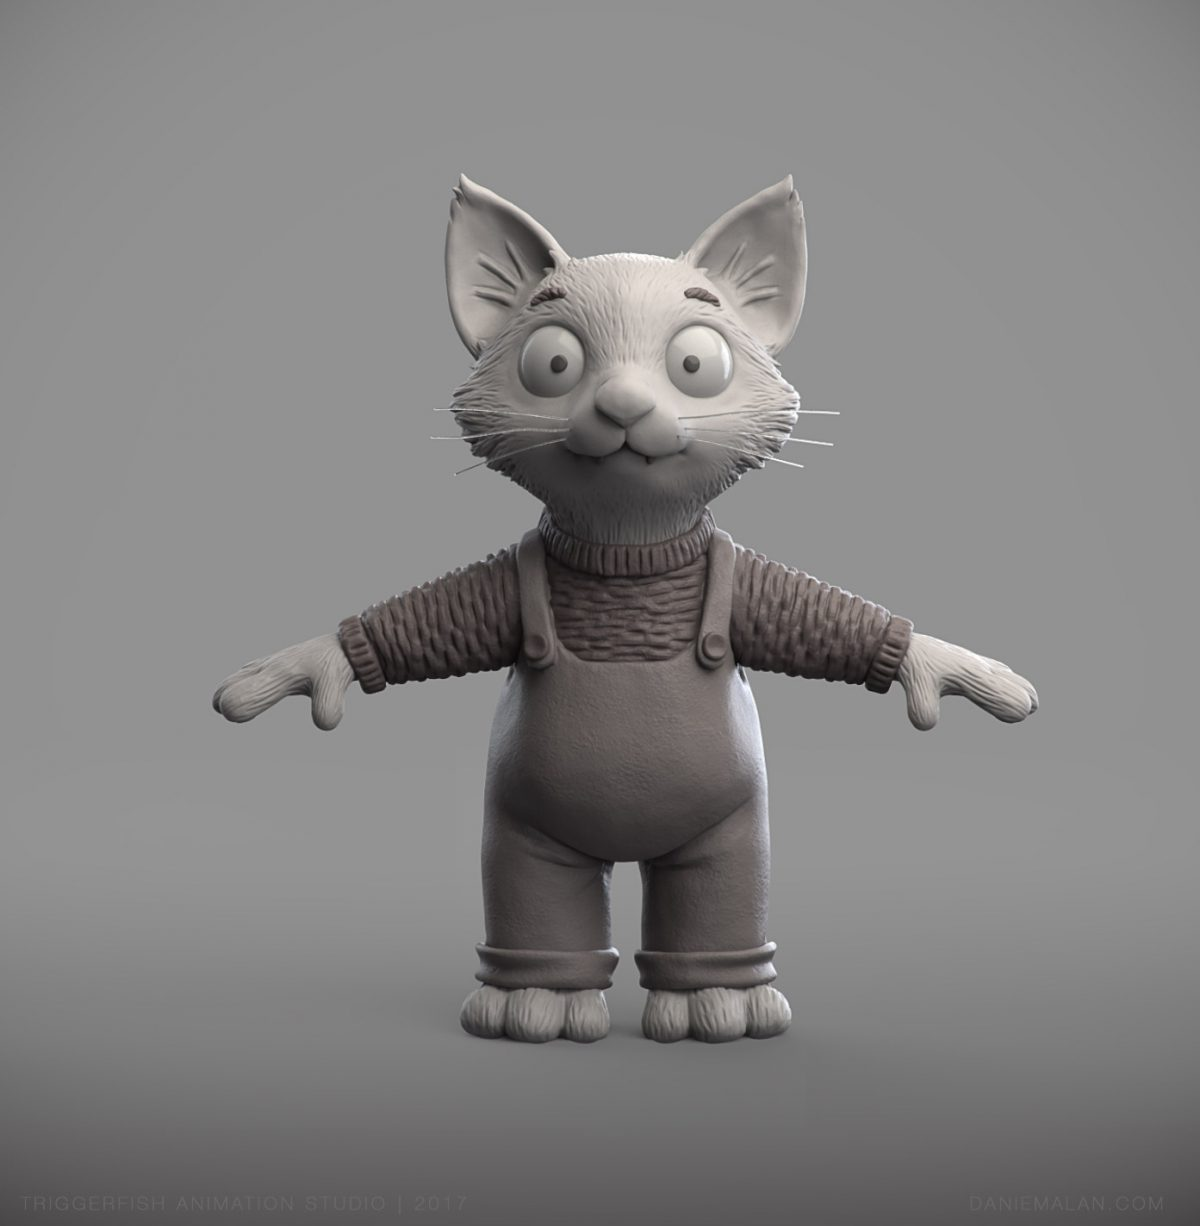 fox character sculpt in zbrush